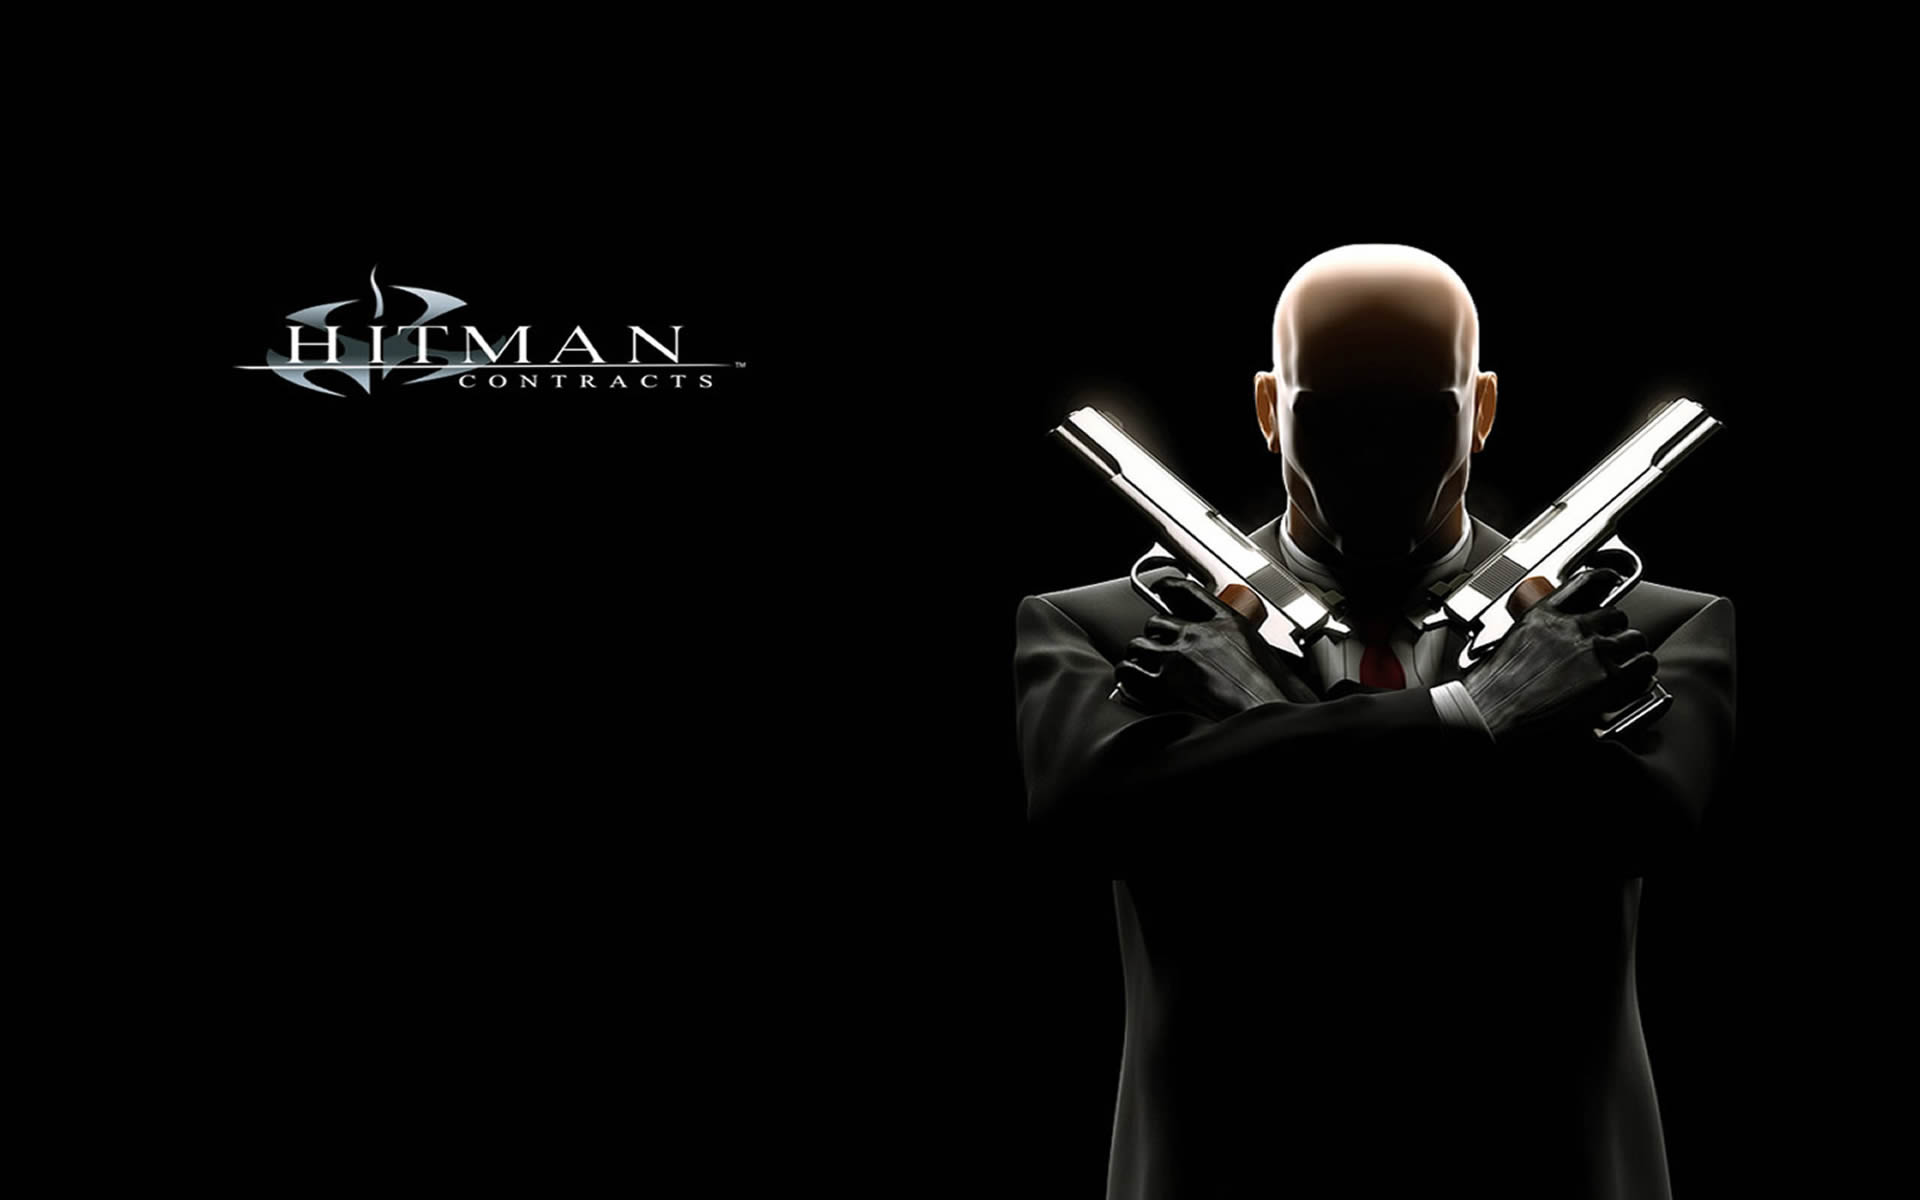 Logo Shadow Hitman Contracts Wallpaper